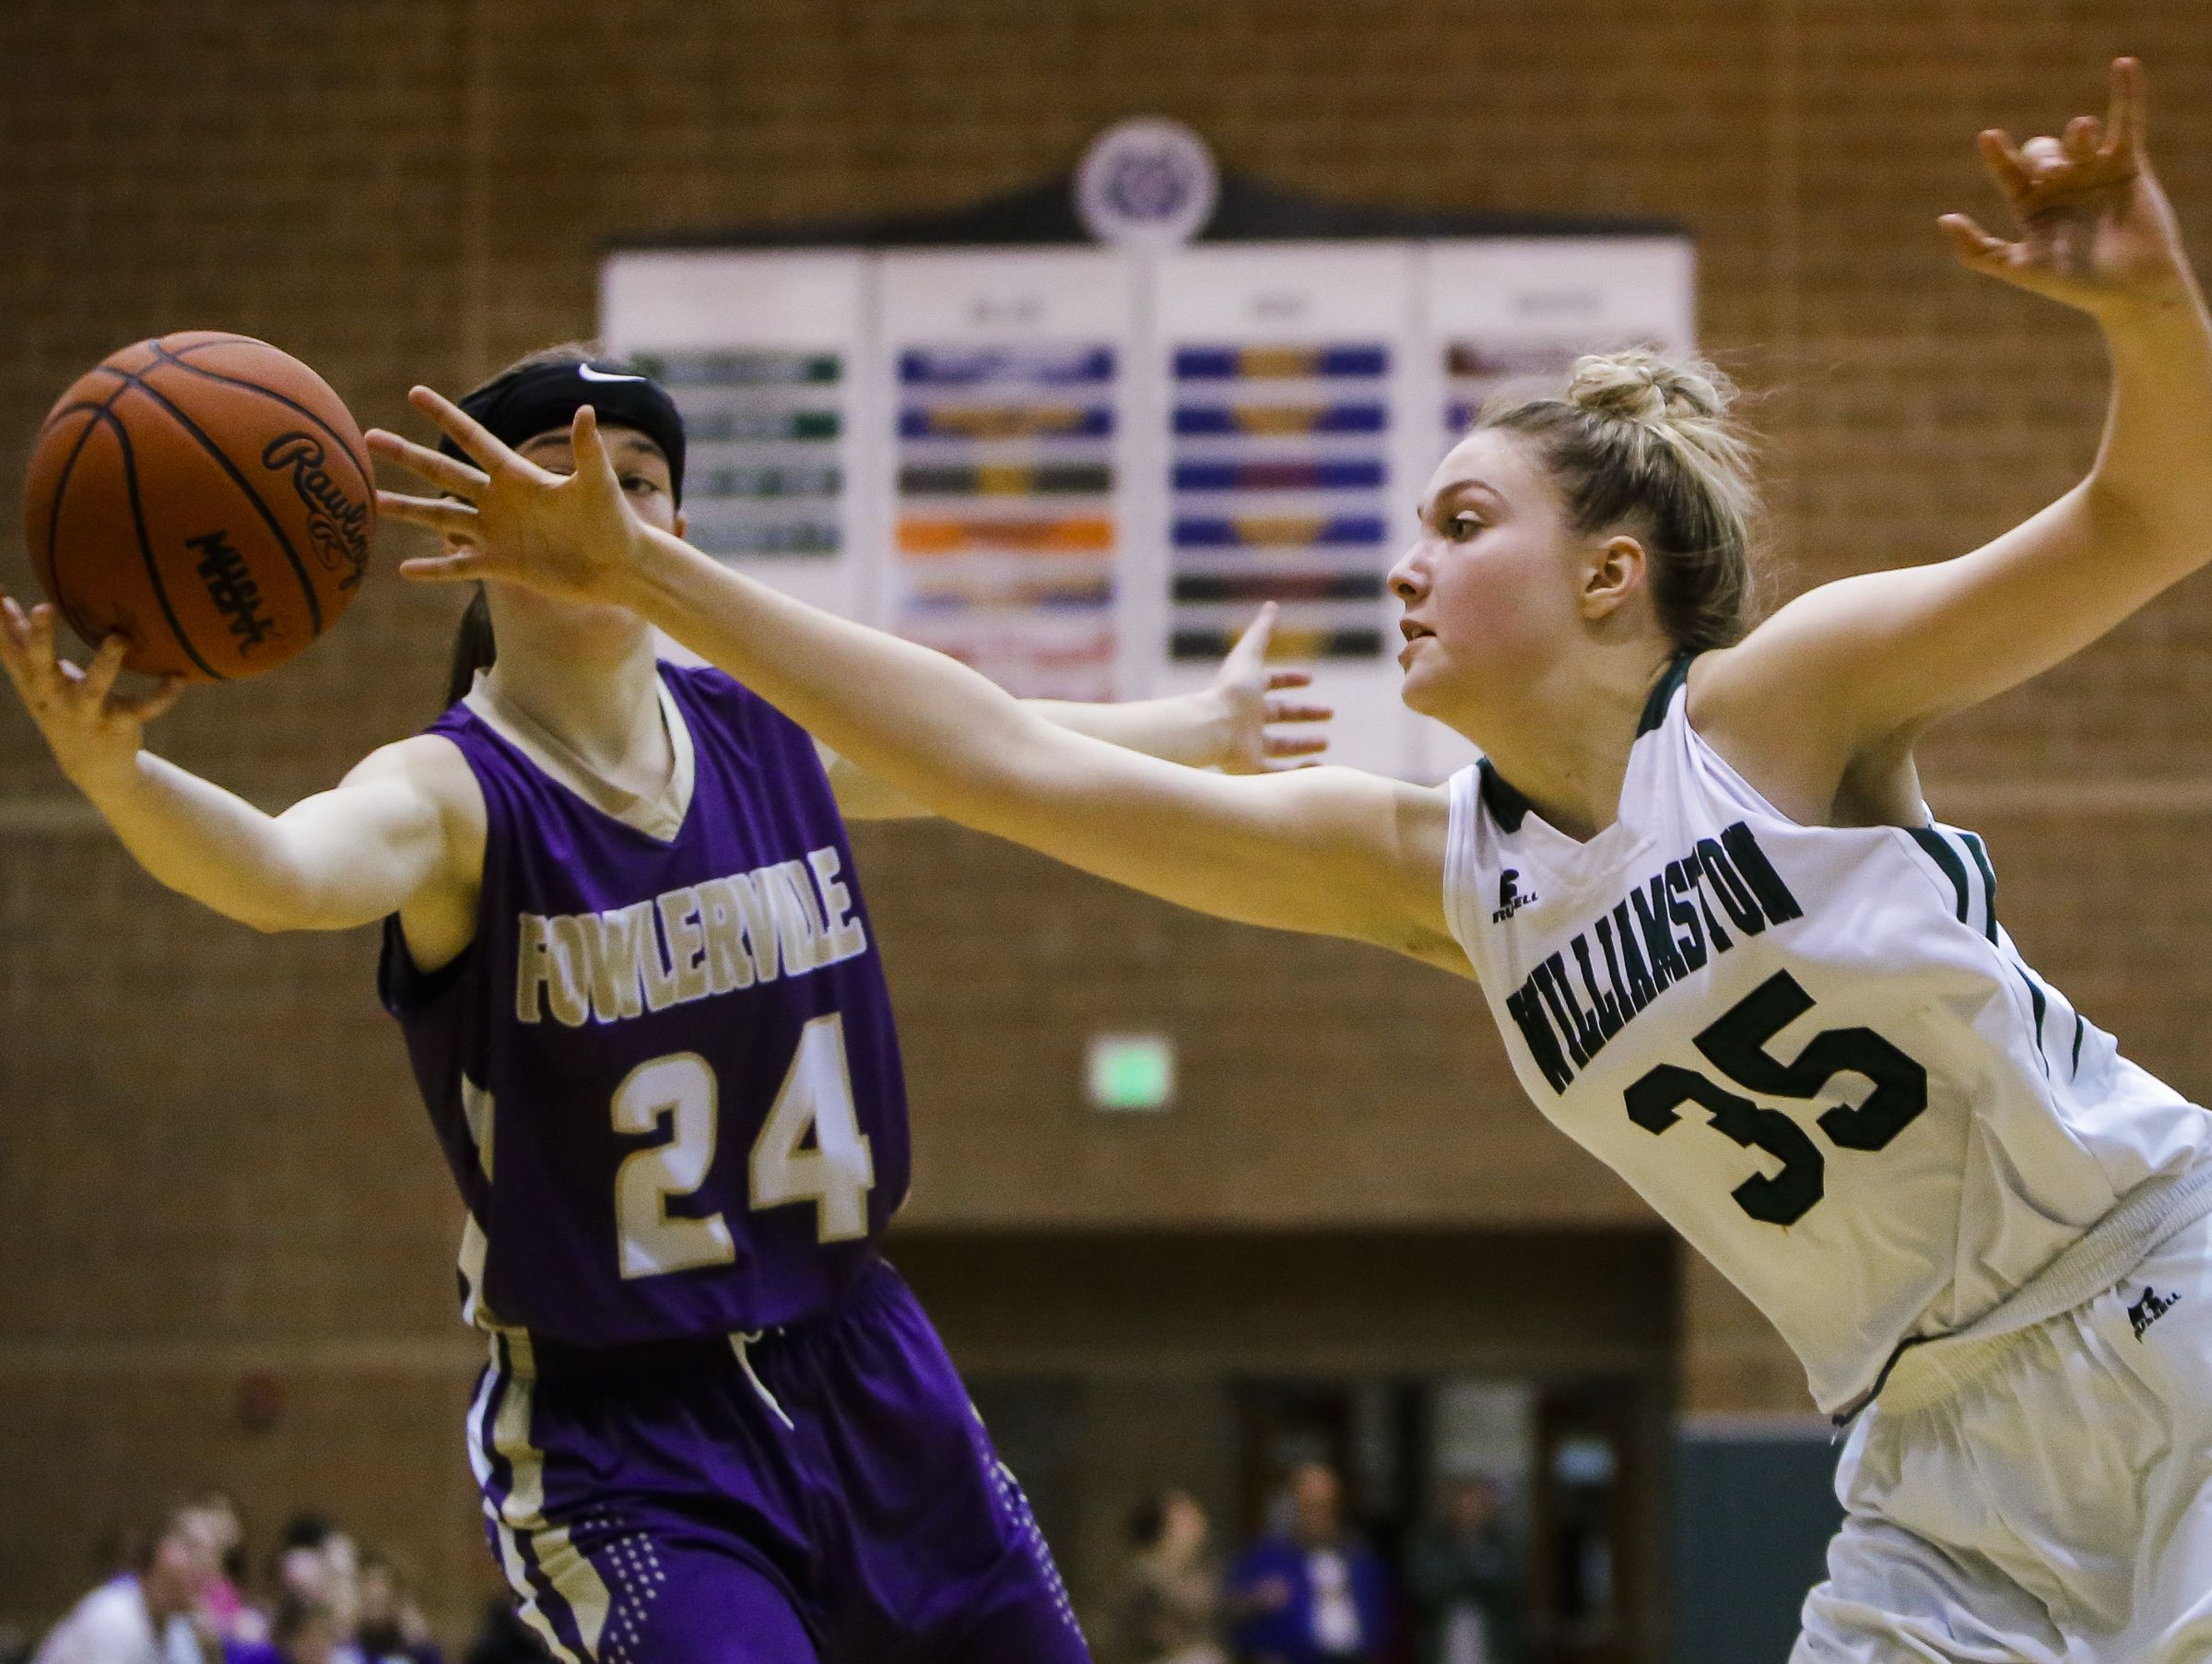 Fowlerville's Elie Smith and Williamston's Allison Peplowski battle for a loose ball Friday, Jan. 13, 2017 at Williamston. Williamston won 62-33.